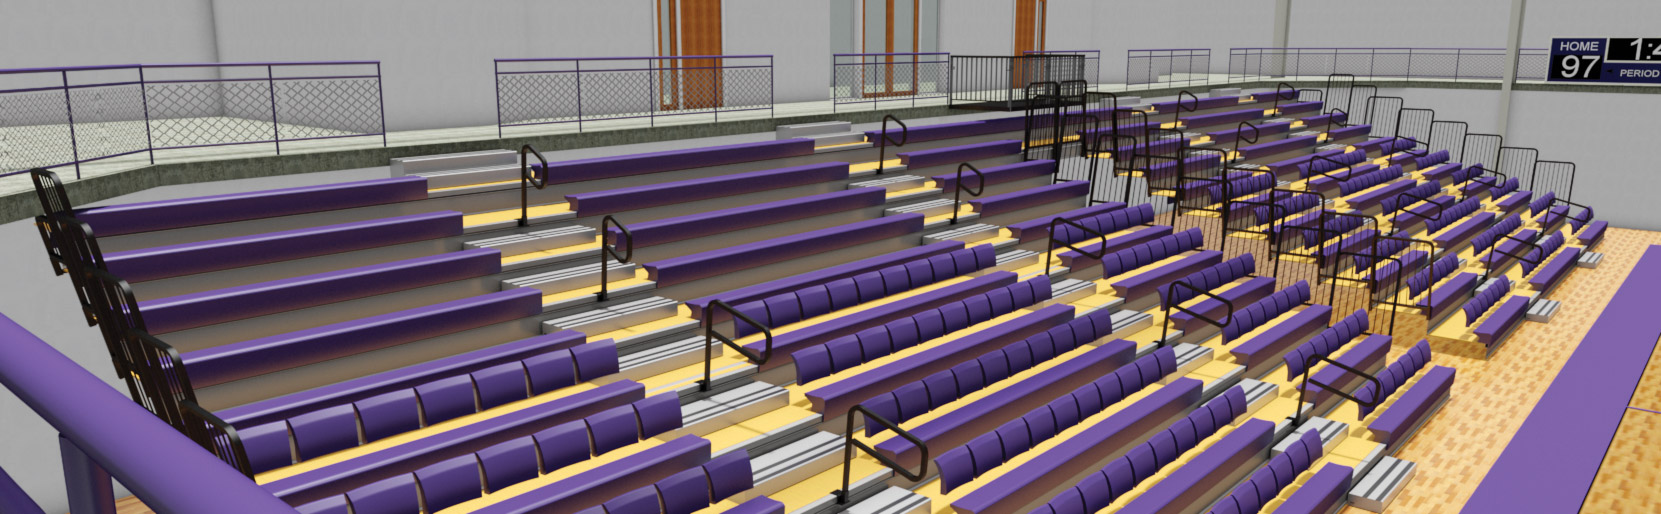 Revit — Hussey Seating Company